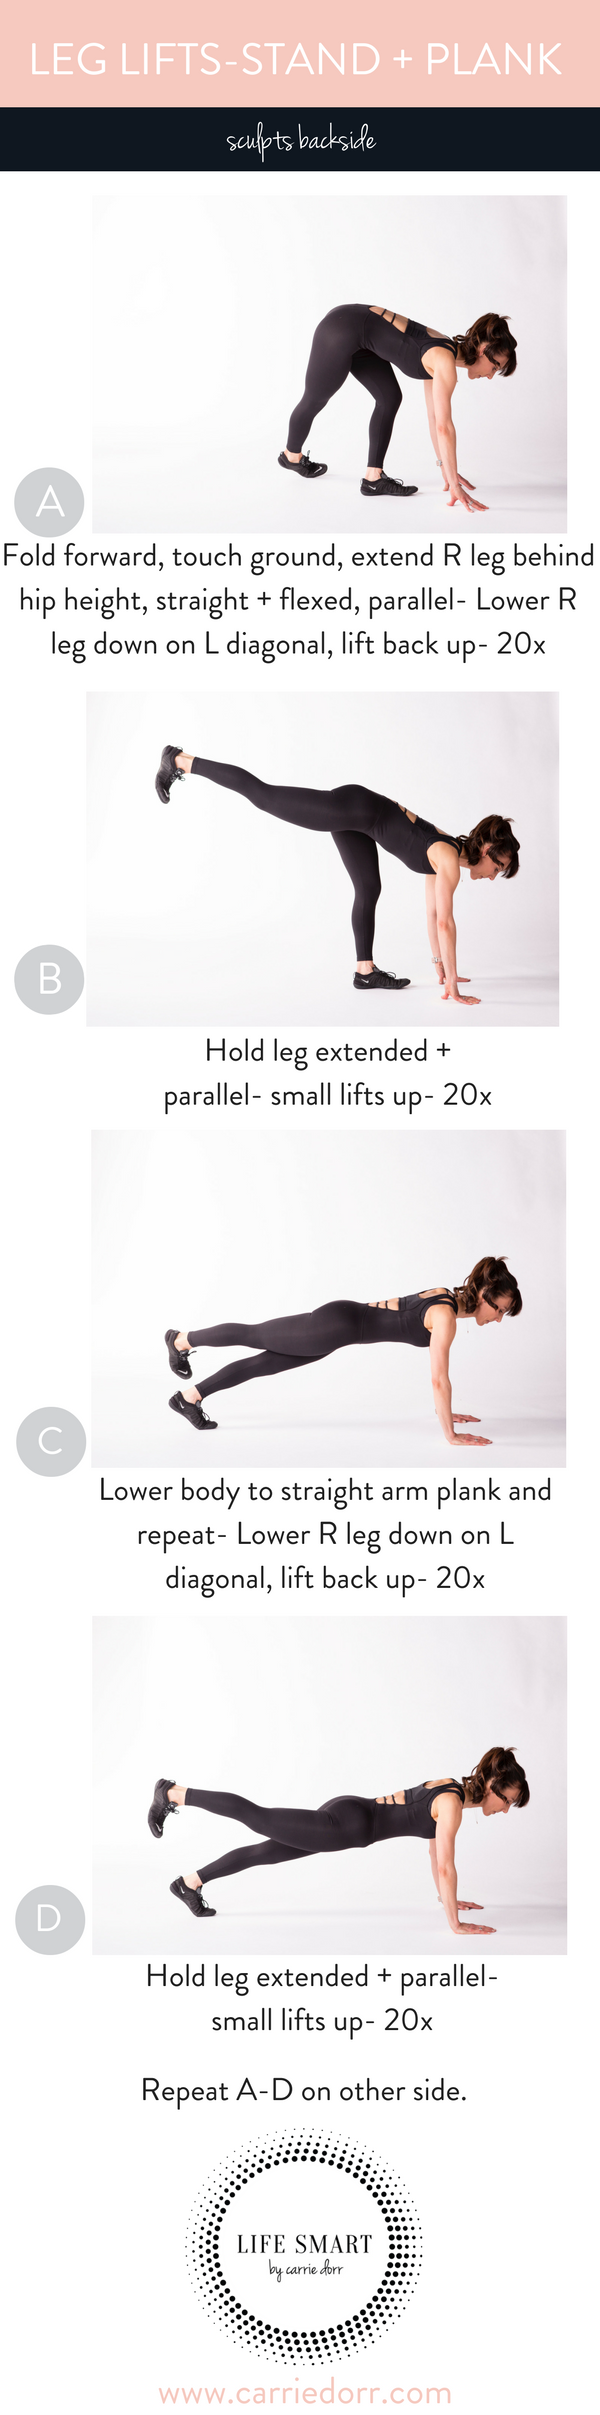 Leg Lifts Stand + Plank-LIFE SMART by Carrie Dorr